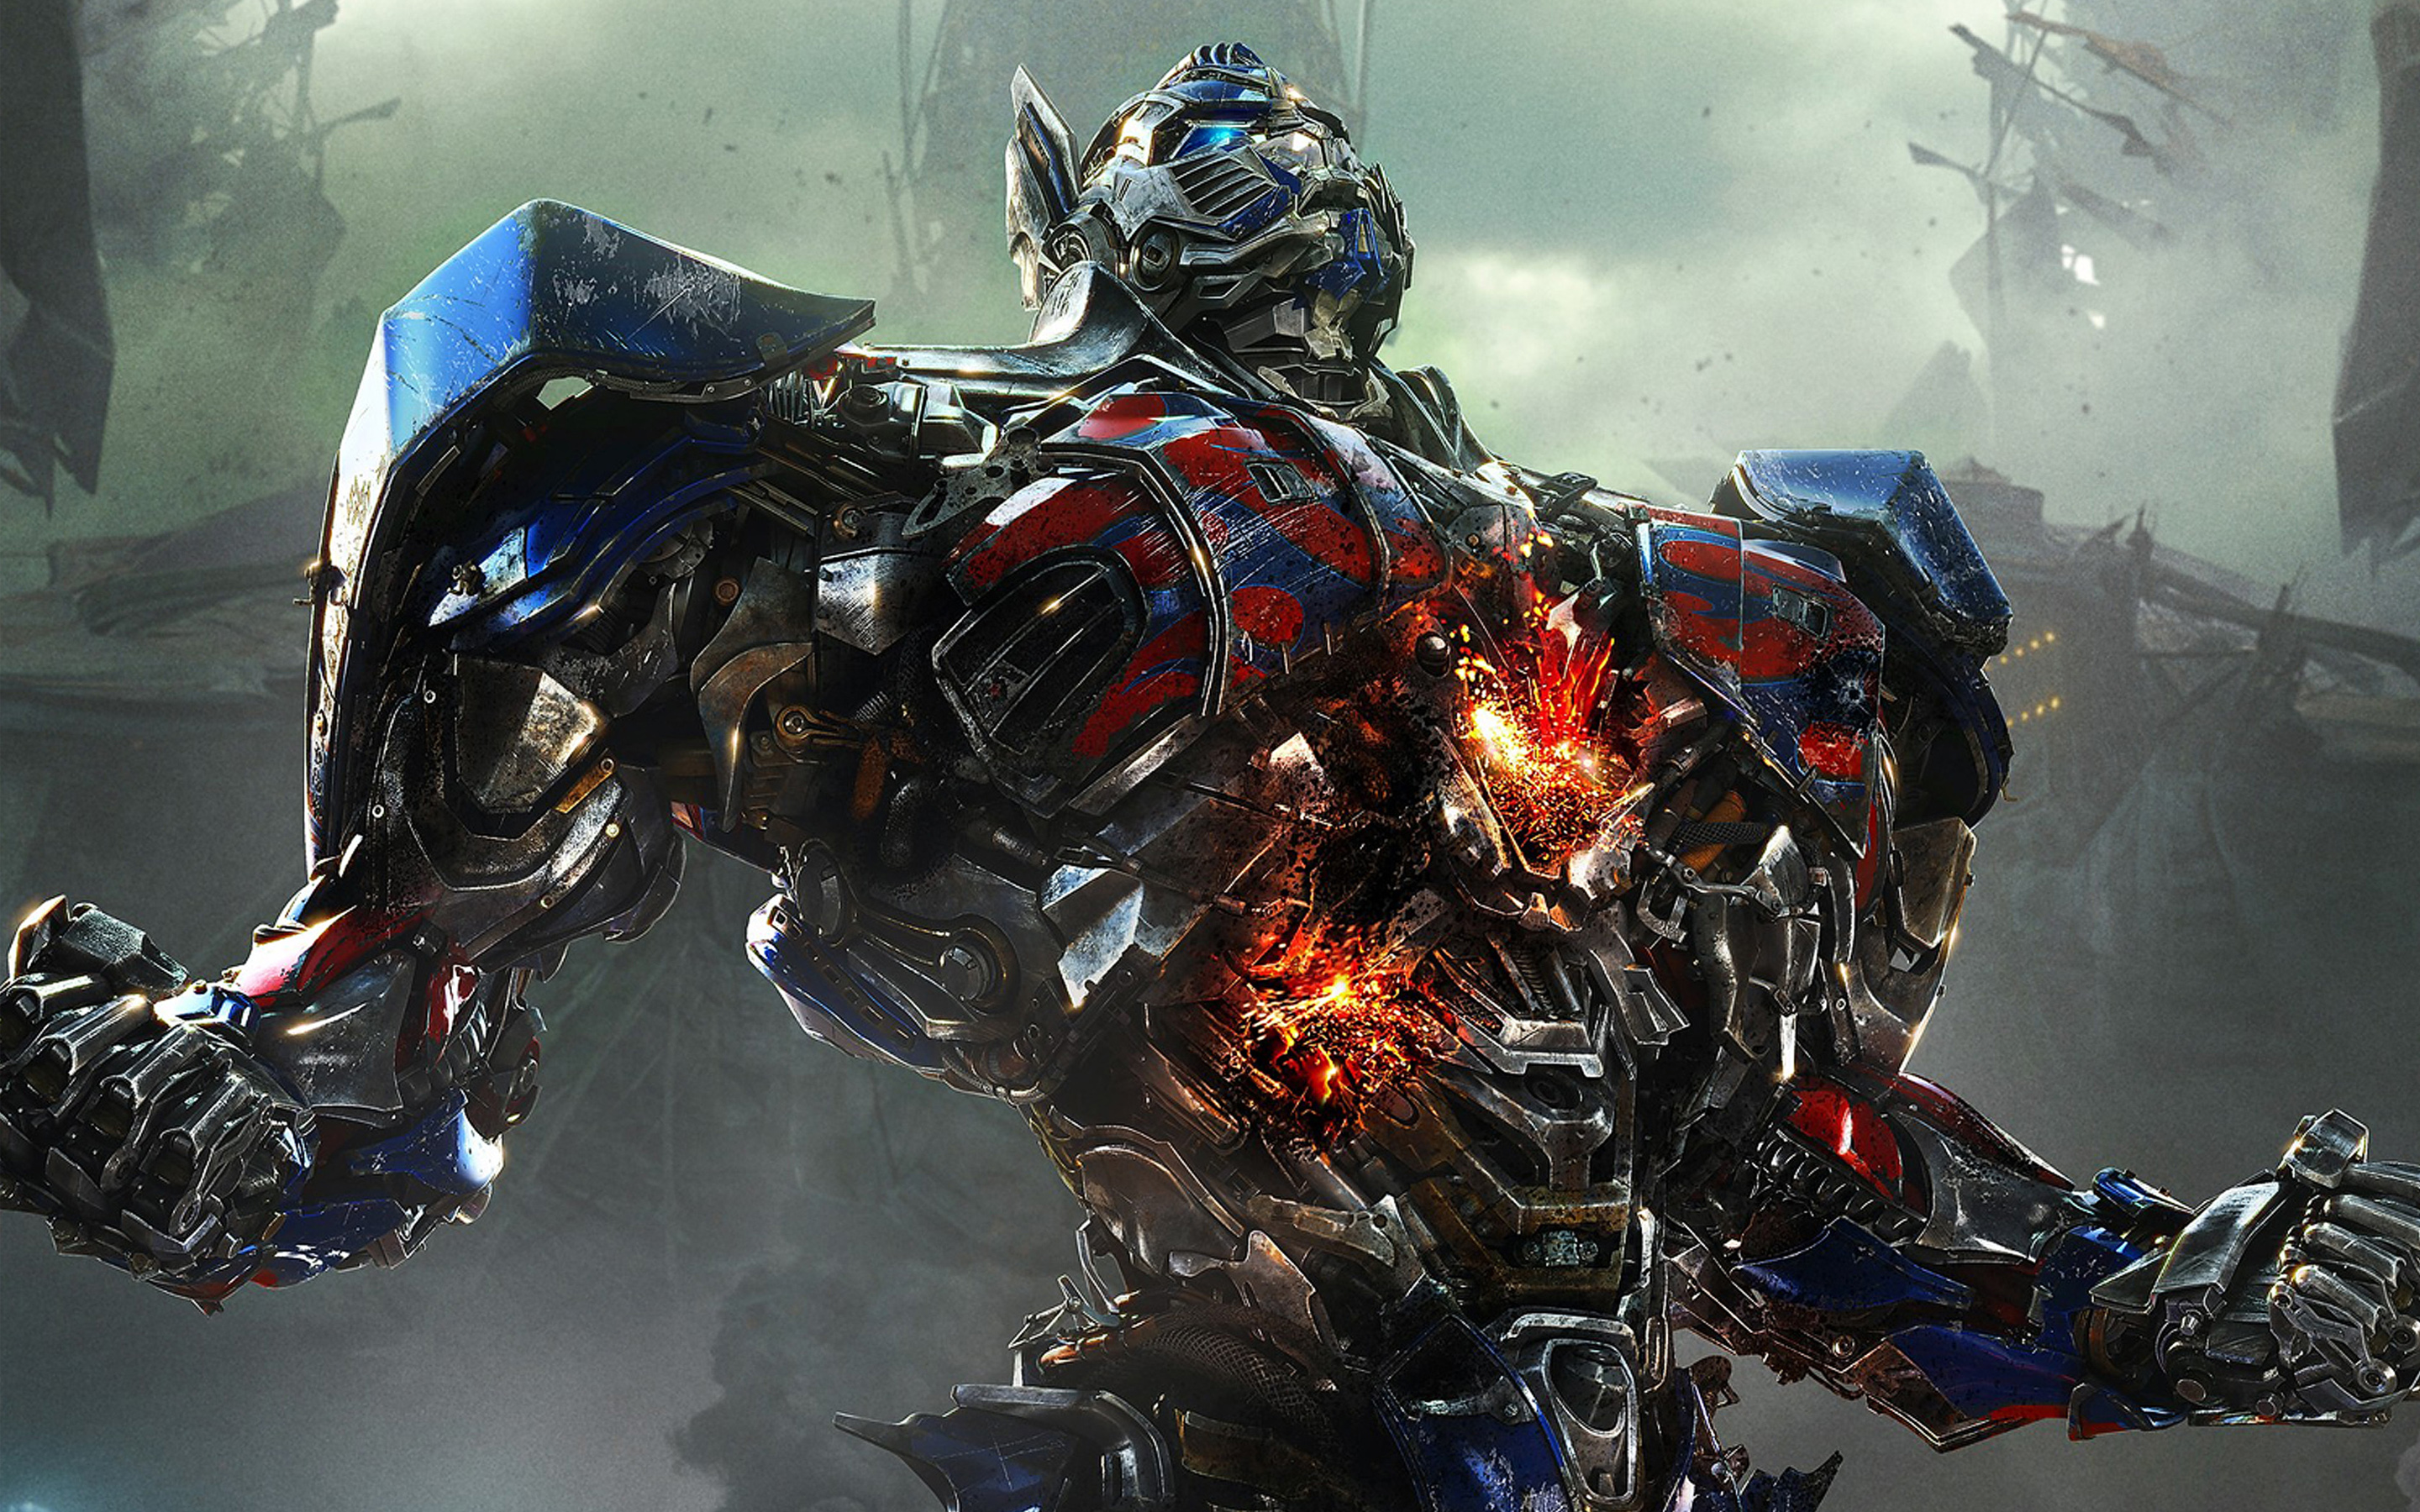 transformers: age of extinction' may be a new, terrible kind of